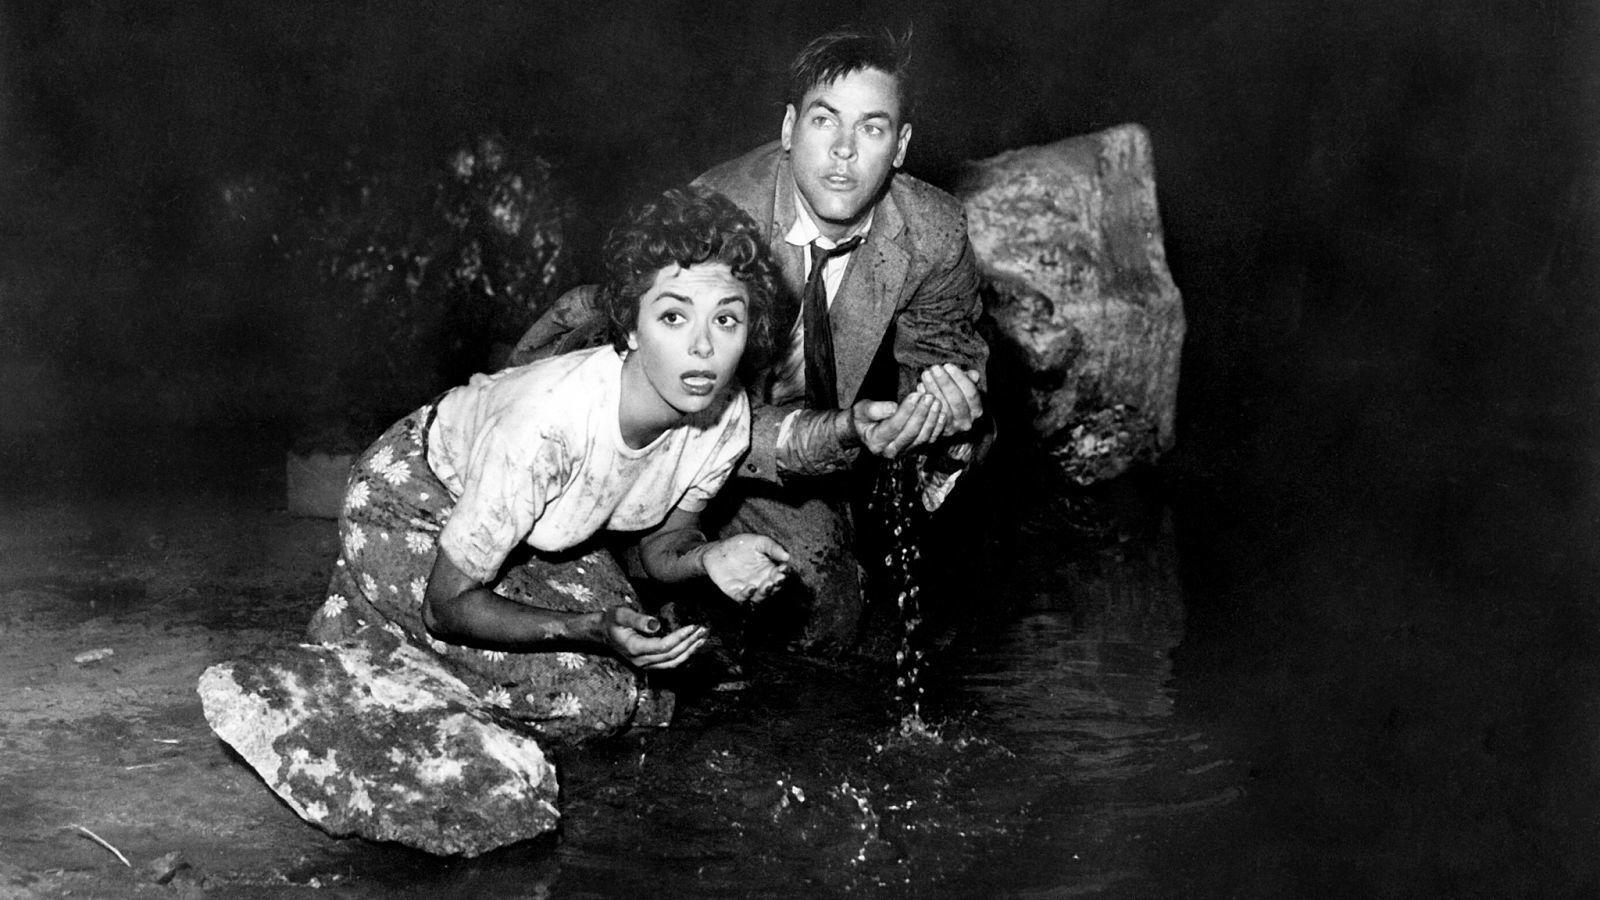 Invasion of the Body Snatchers (1956) — Science on Screen